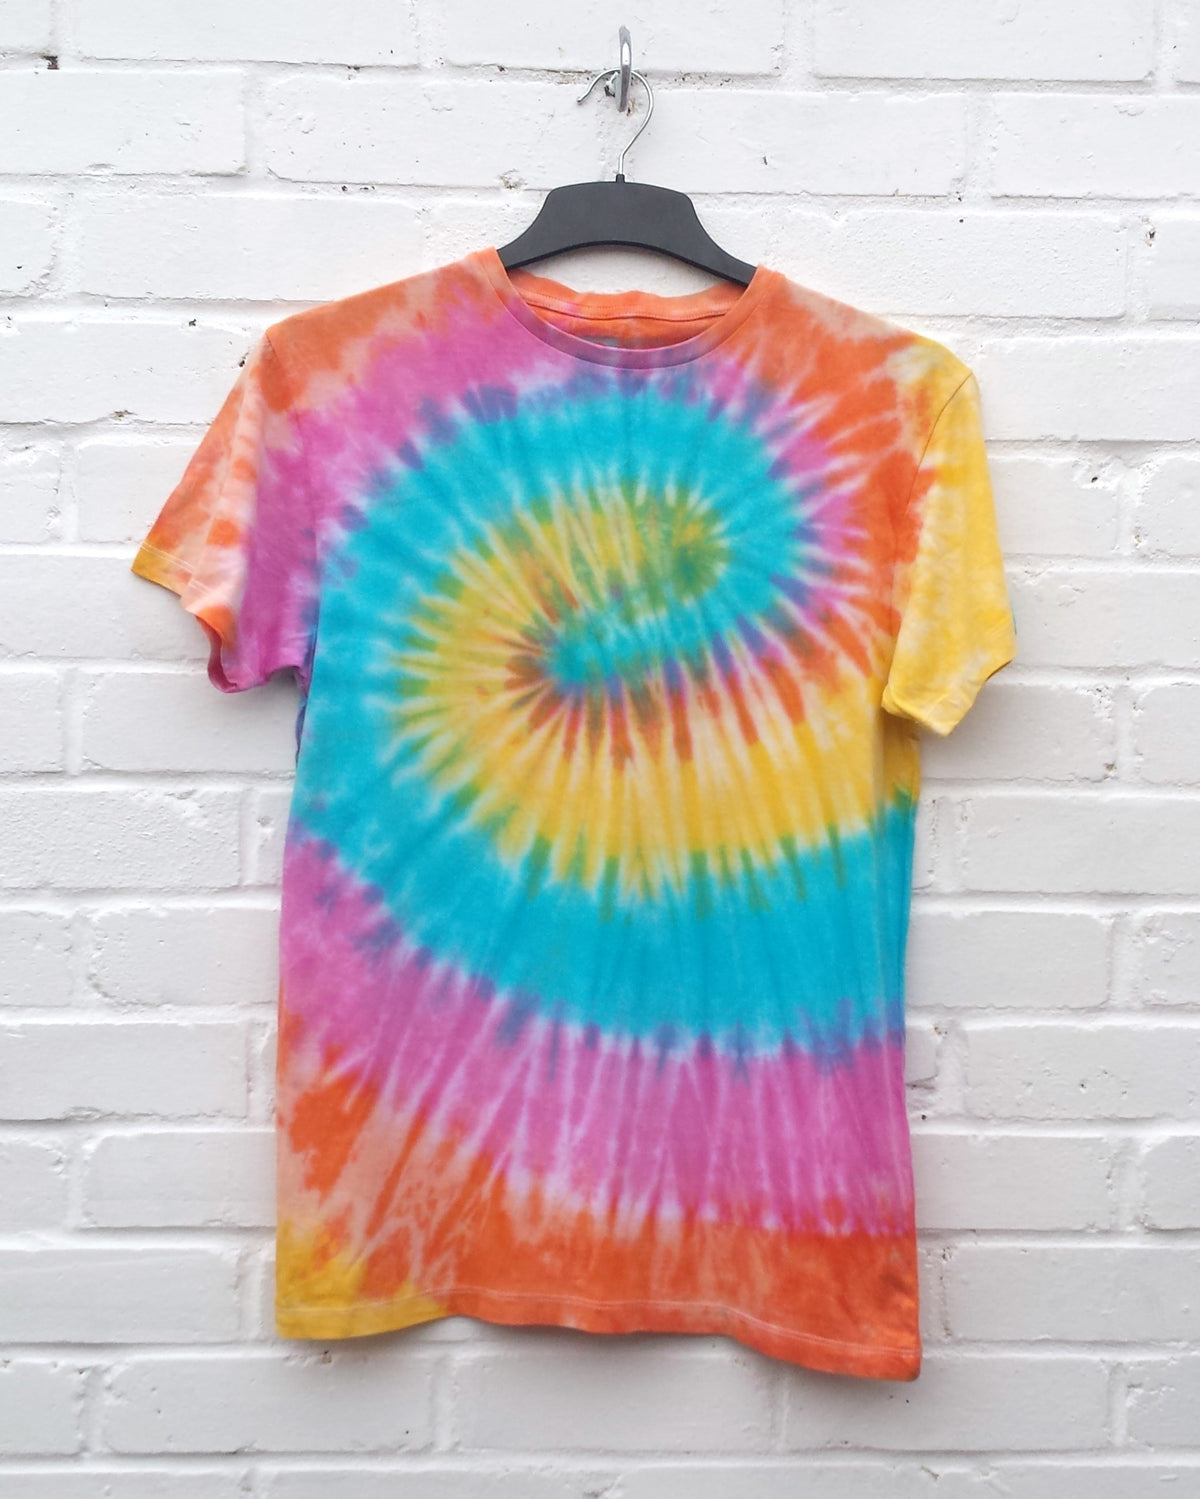 Hippie Tie Dye Shirt Trippy Psychedelic Unisex Tshirt ALL SIZES AVAILABLE Festival Summer Fashion